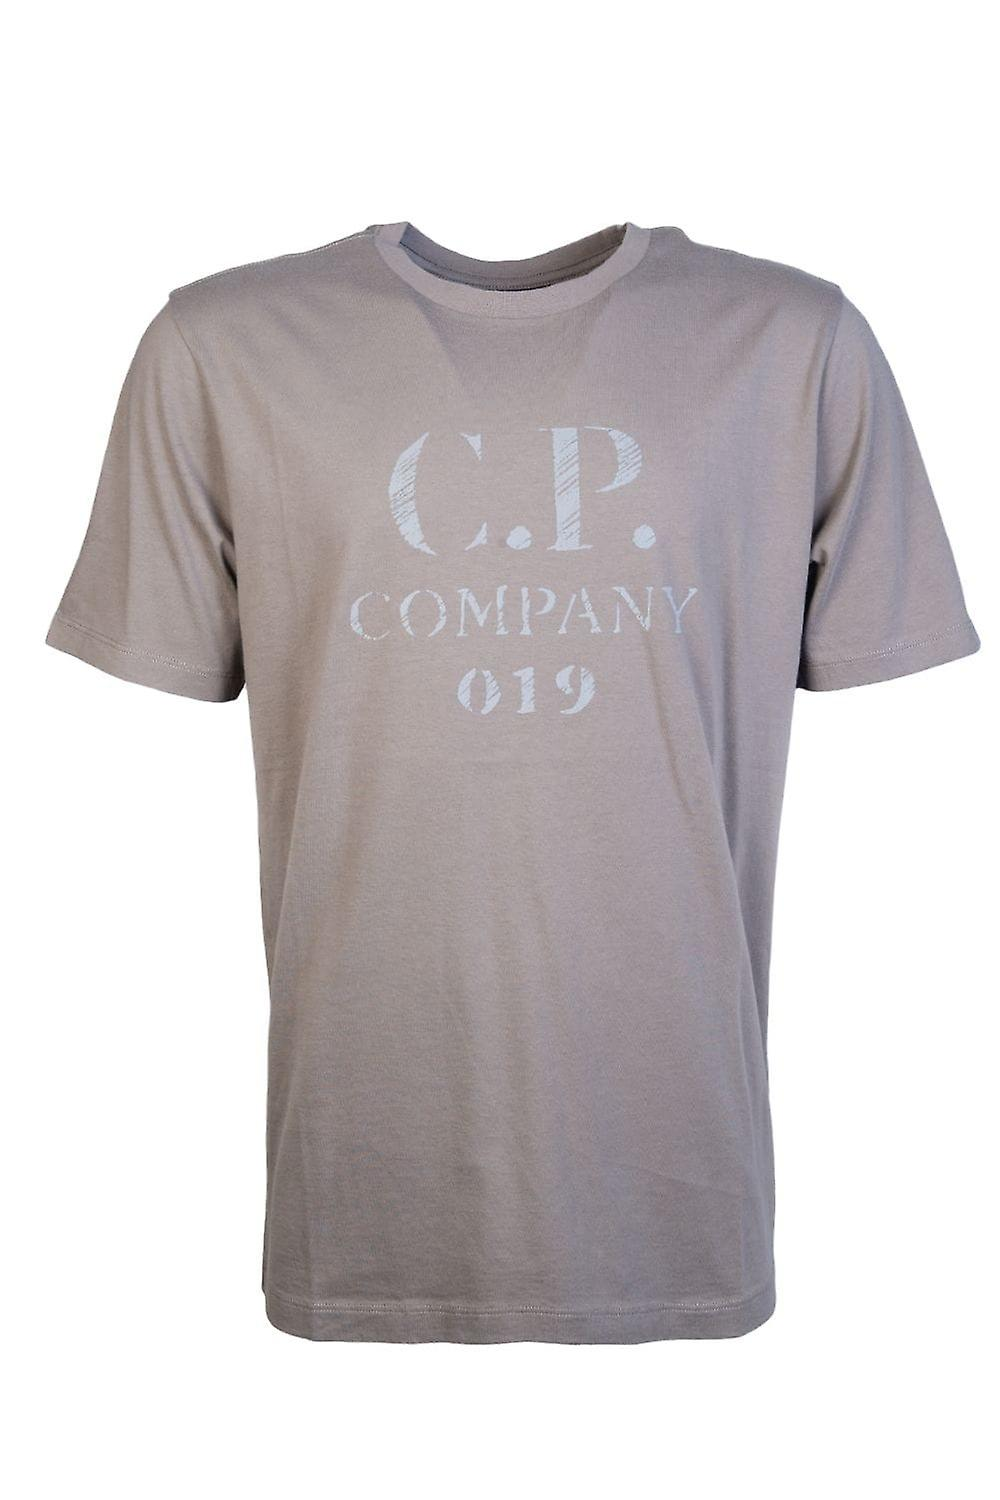 CP Company Round Neck T Shirt MTS158A 005100W